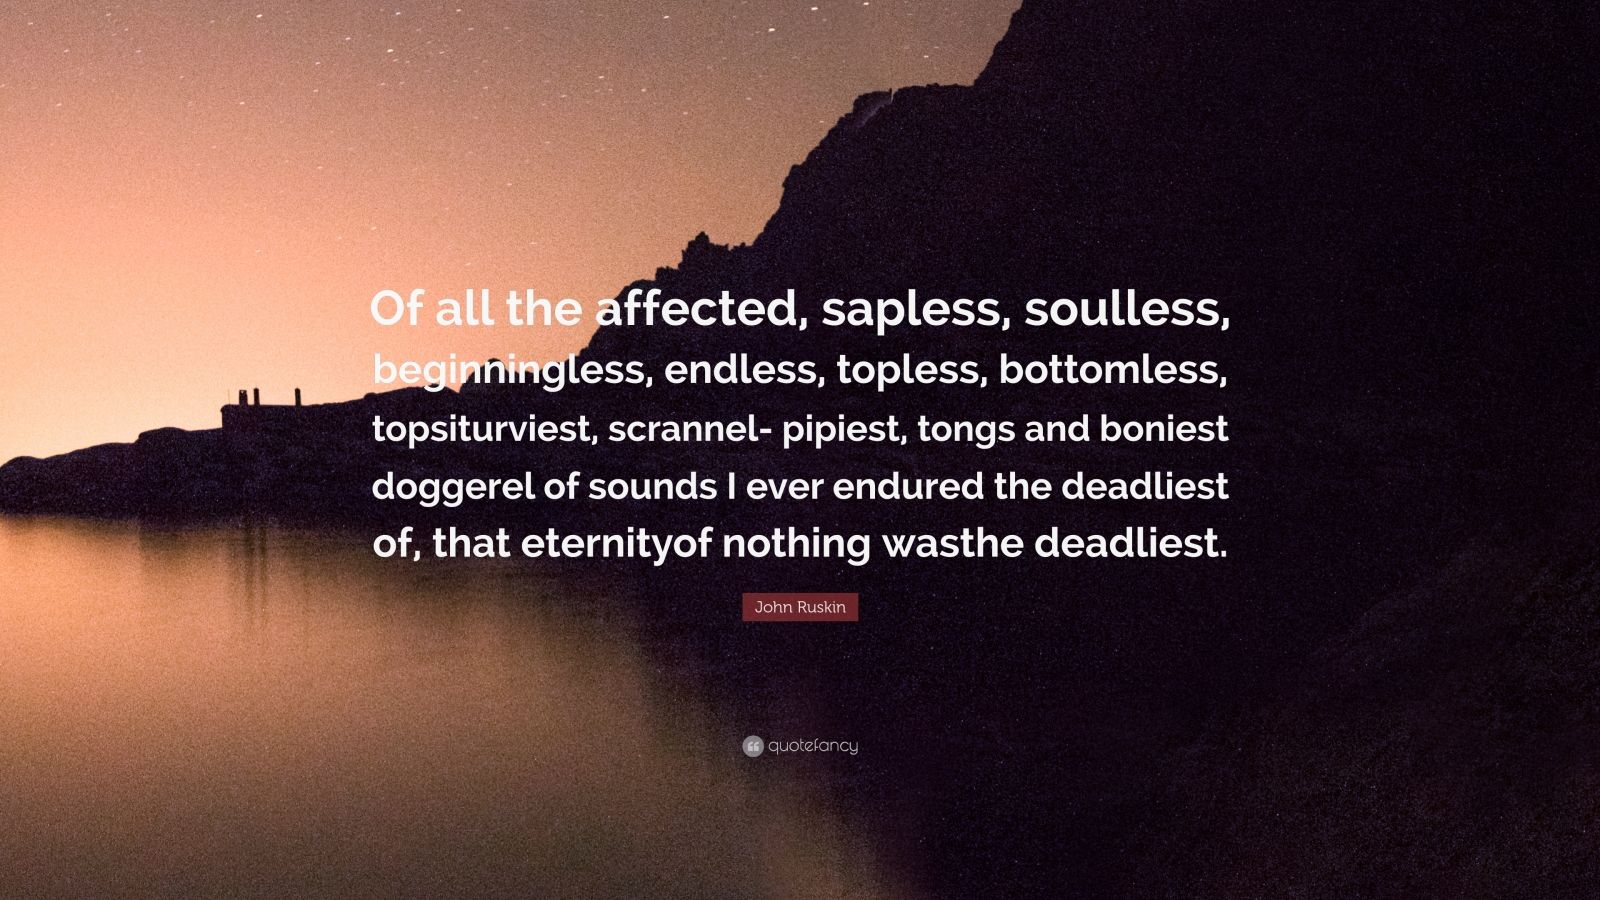 """John Ruskin Quote: """"Of all the affected, sapless, soulless, beginningless, endless, topless, bottomless, topsiturviest, scrannel- pipiest, tongs and boniest doggerel of sounds I ever endured the deadliest of, that eternityof nothing wasthe deadliest."""""""